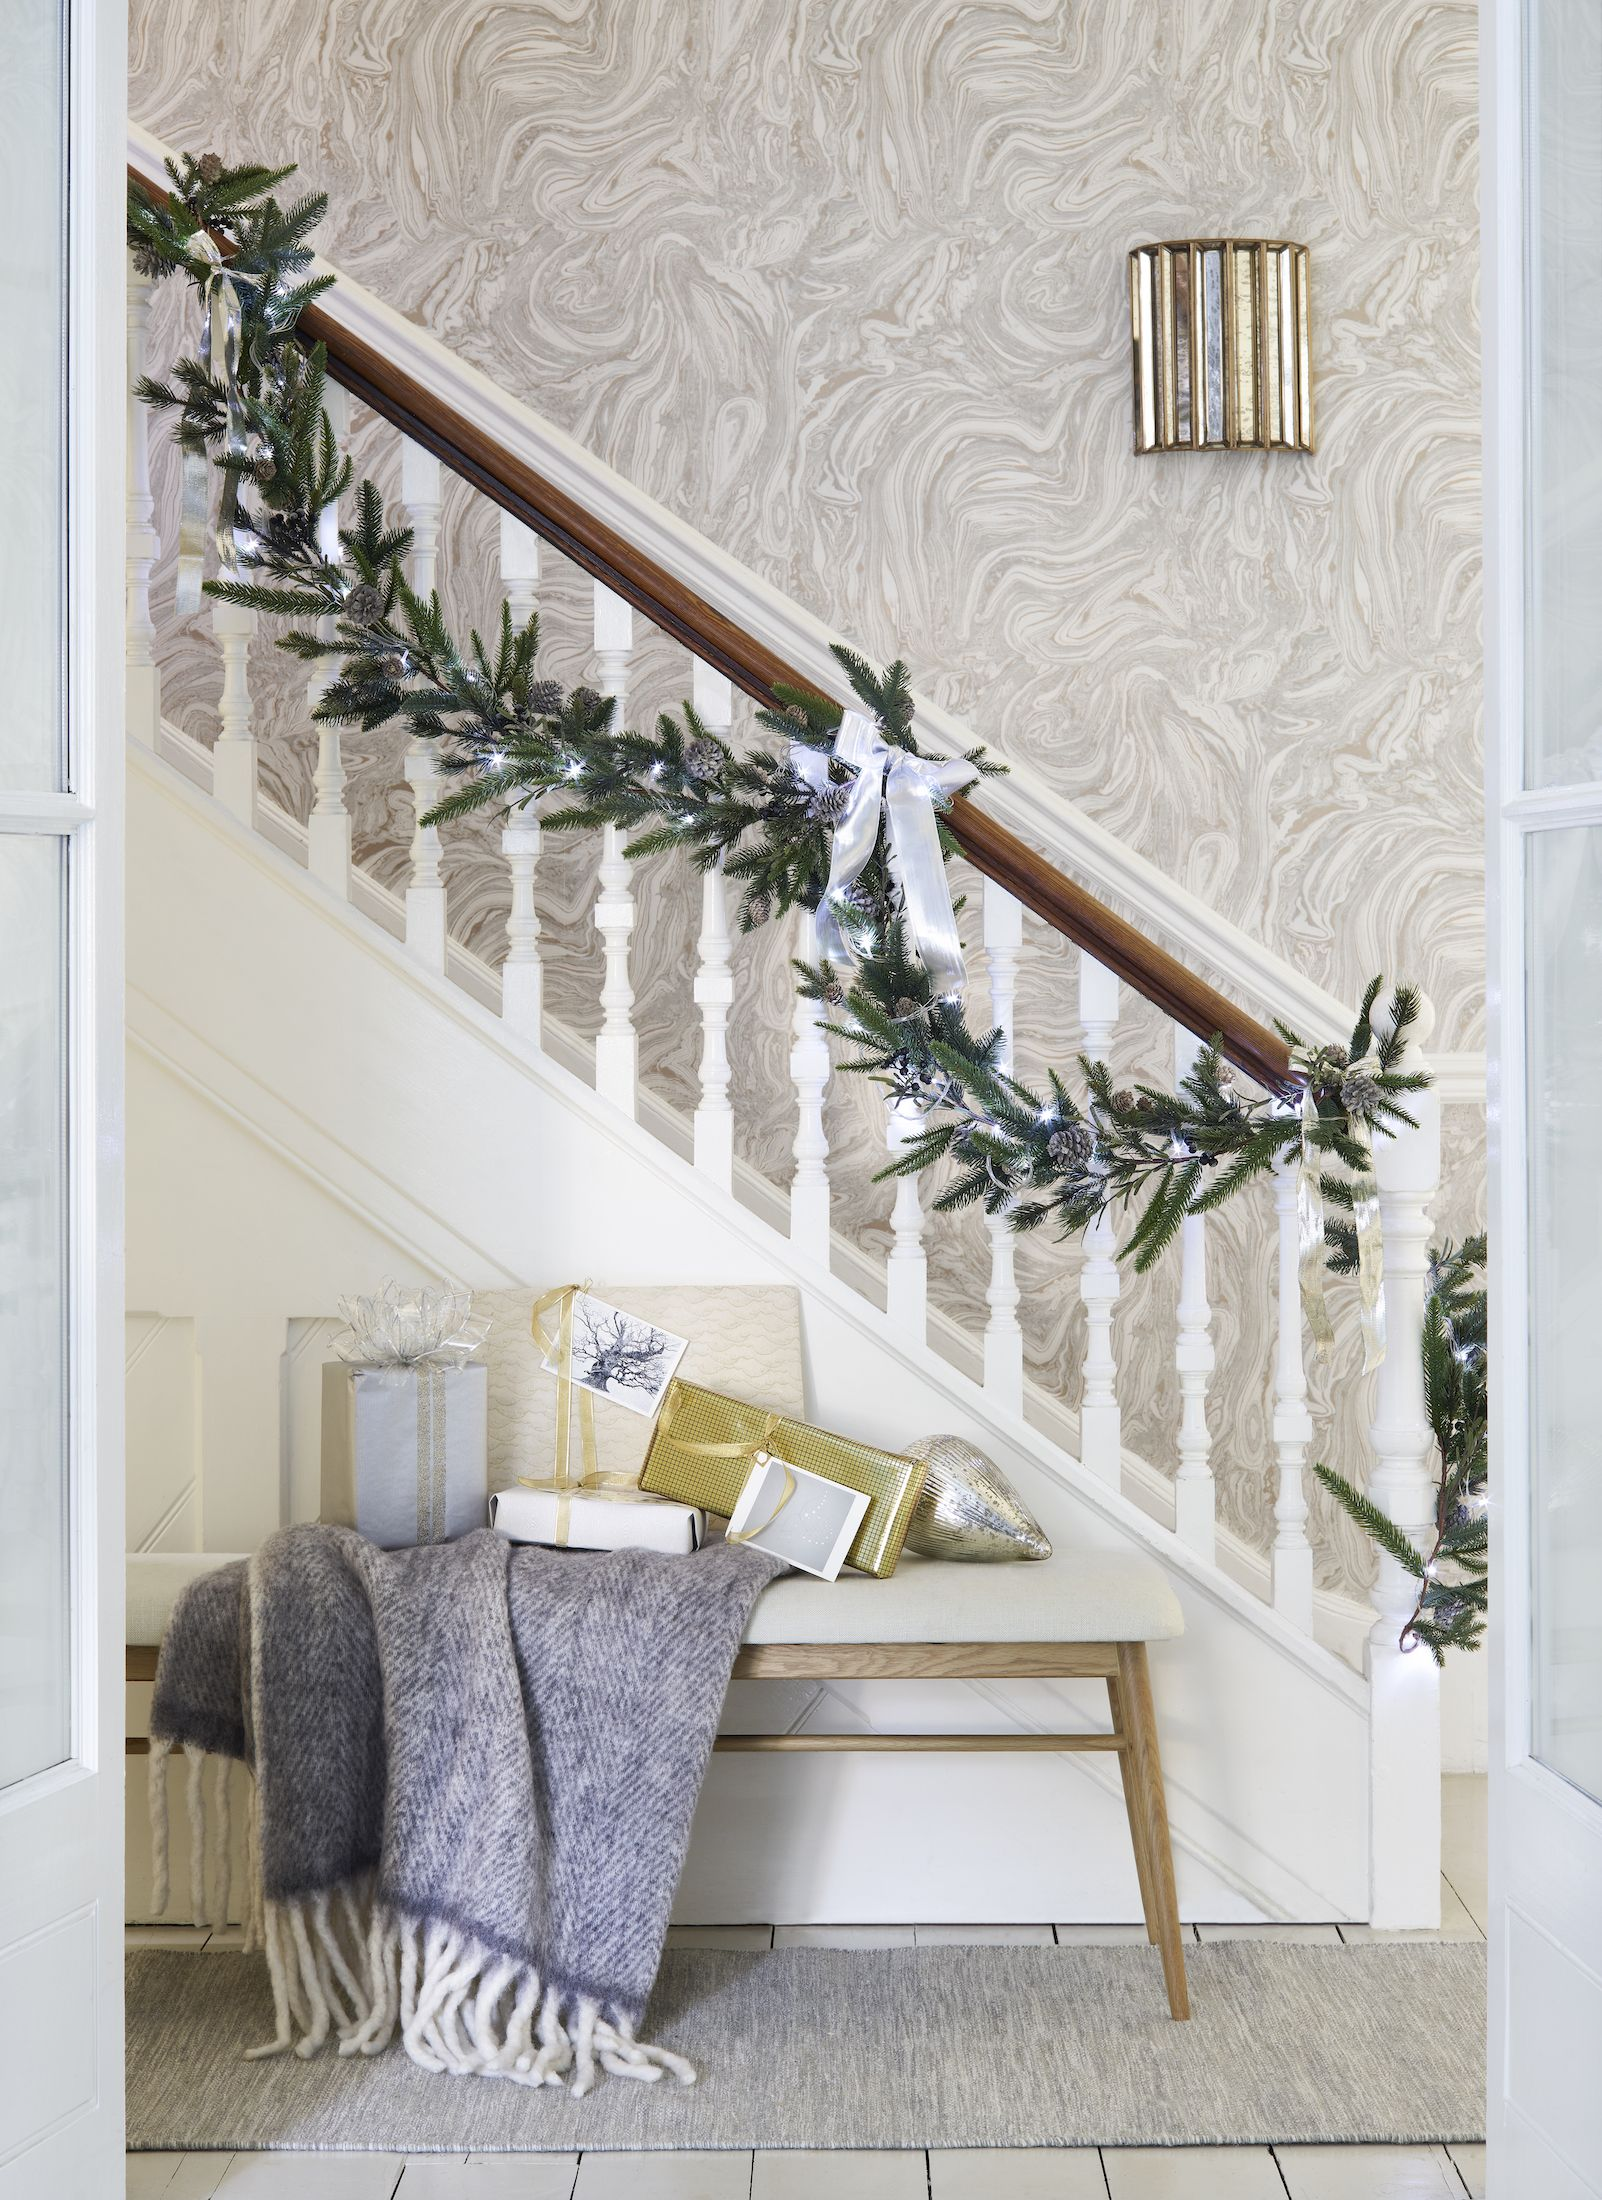 How to create a welcoming entrance in your home this Christmas